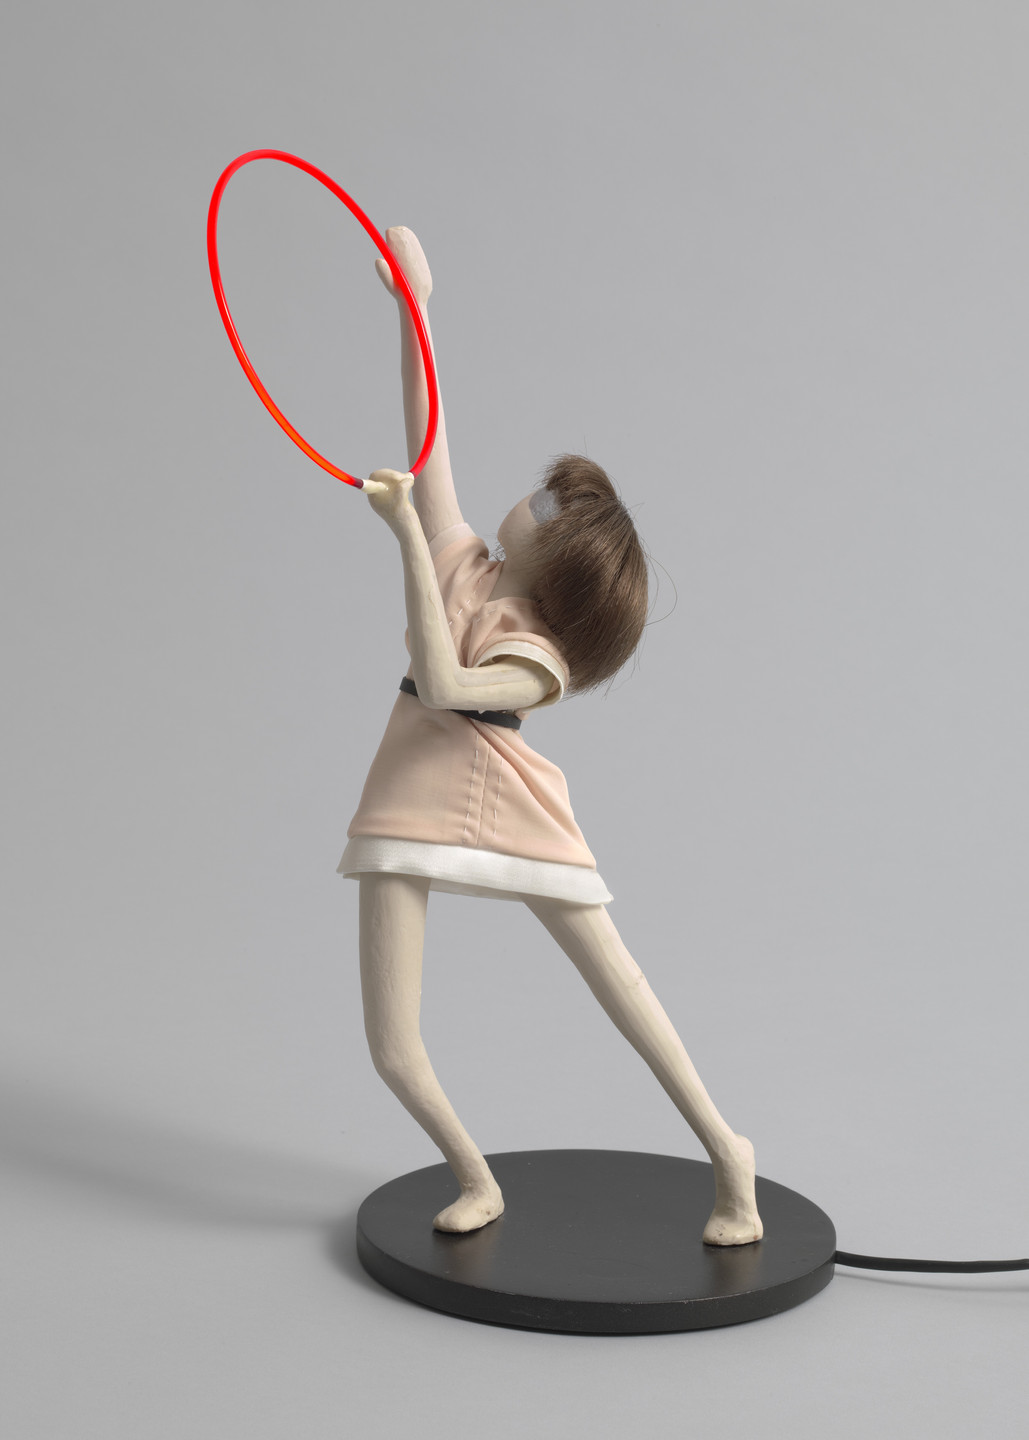 Mai-Thu Perret. A Portable Apocalypse Ballet (Red Ring) (for Parkett no. 84). 2008